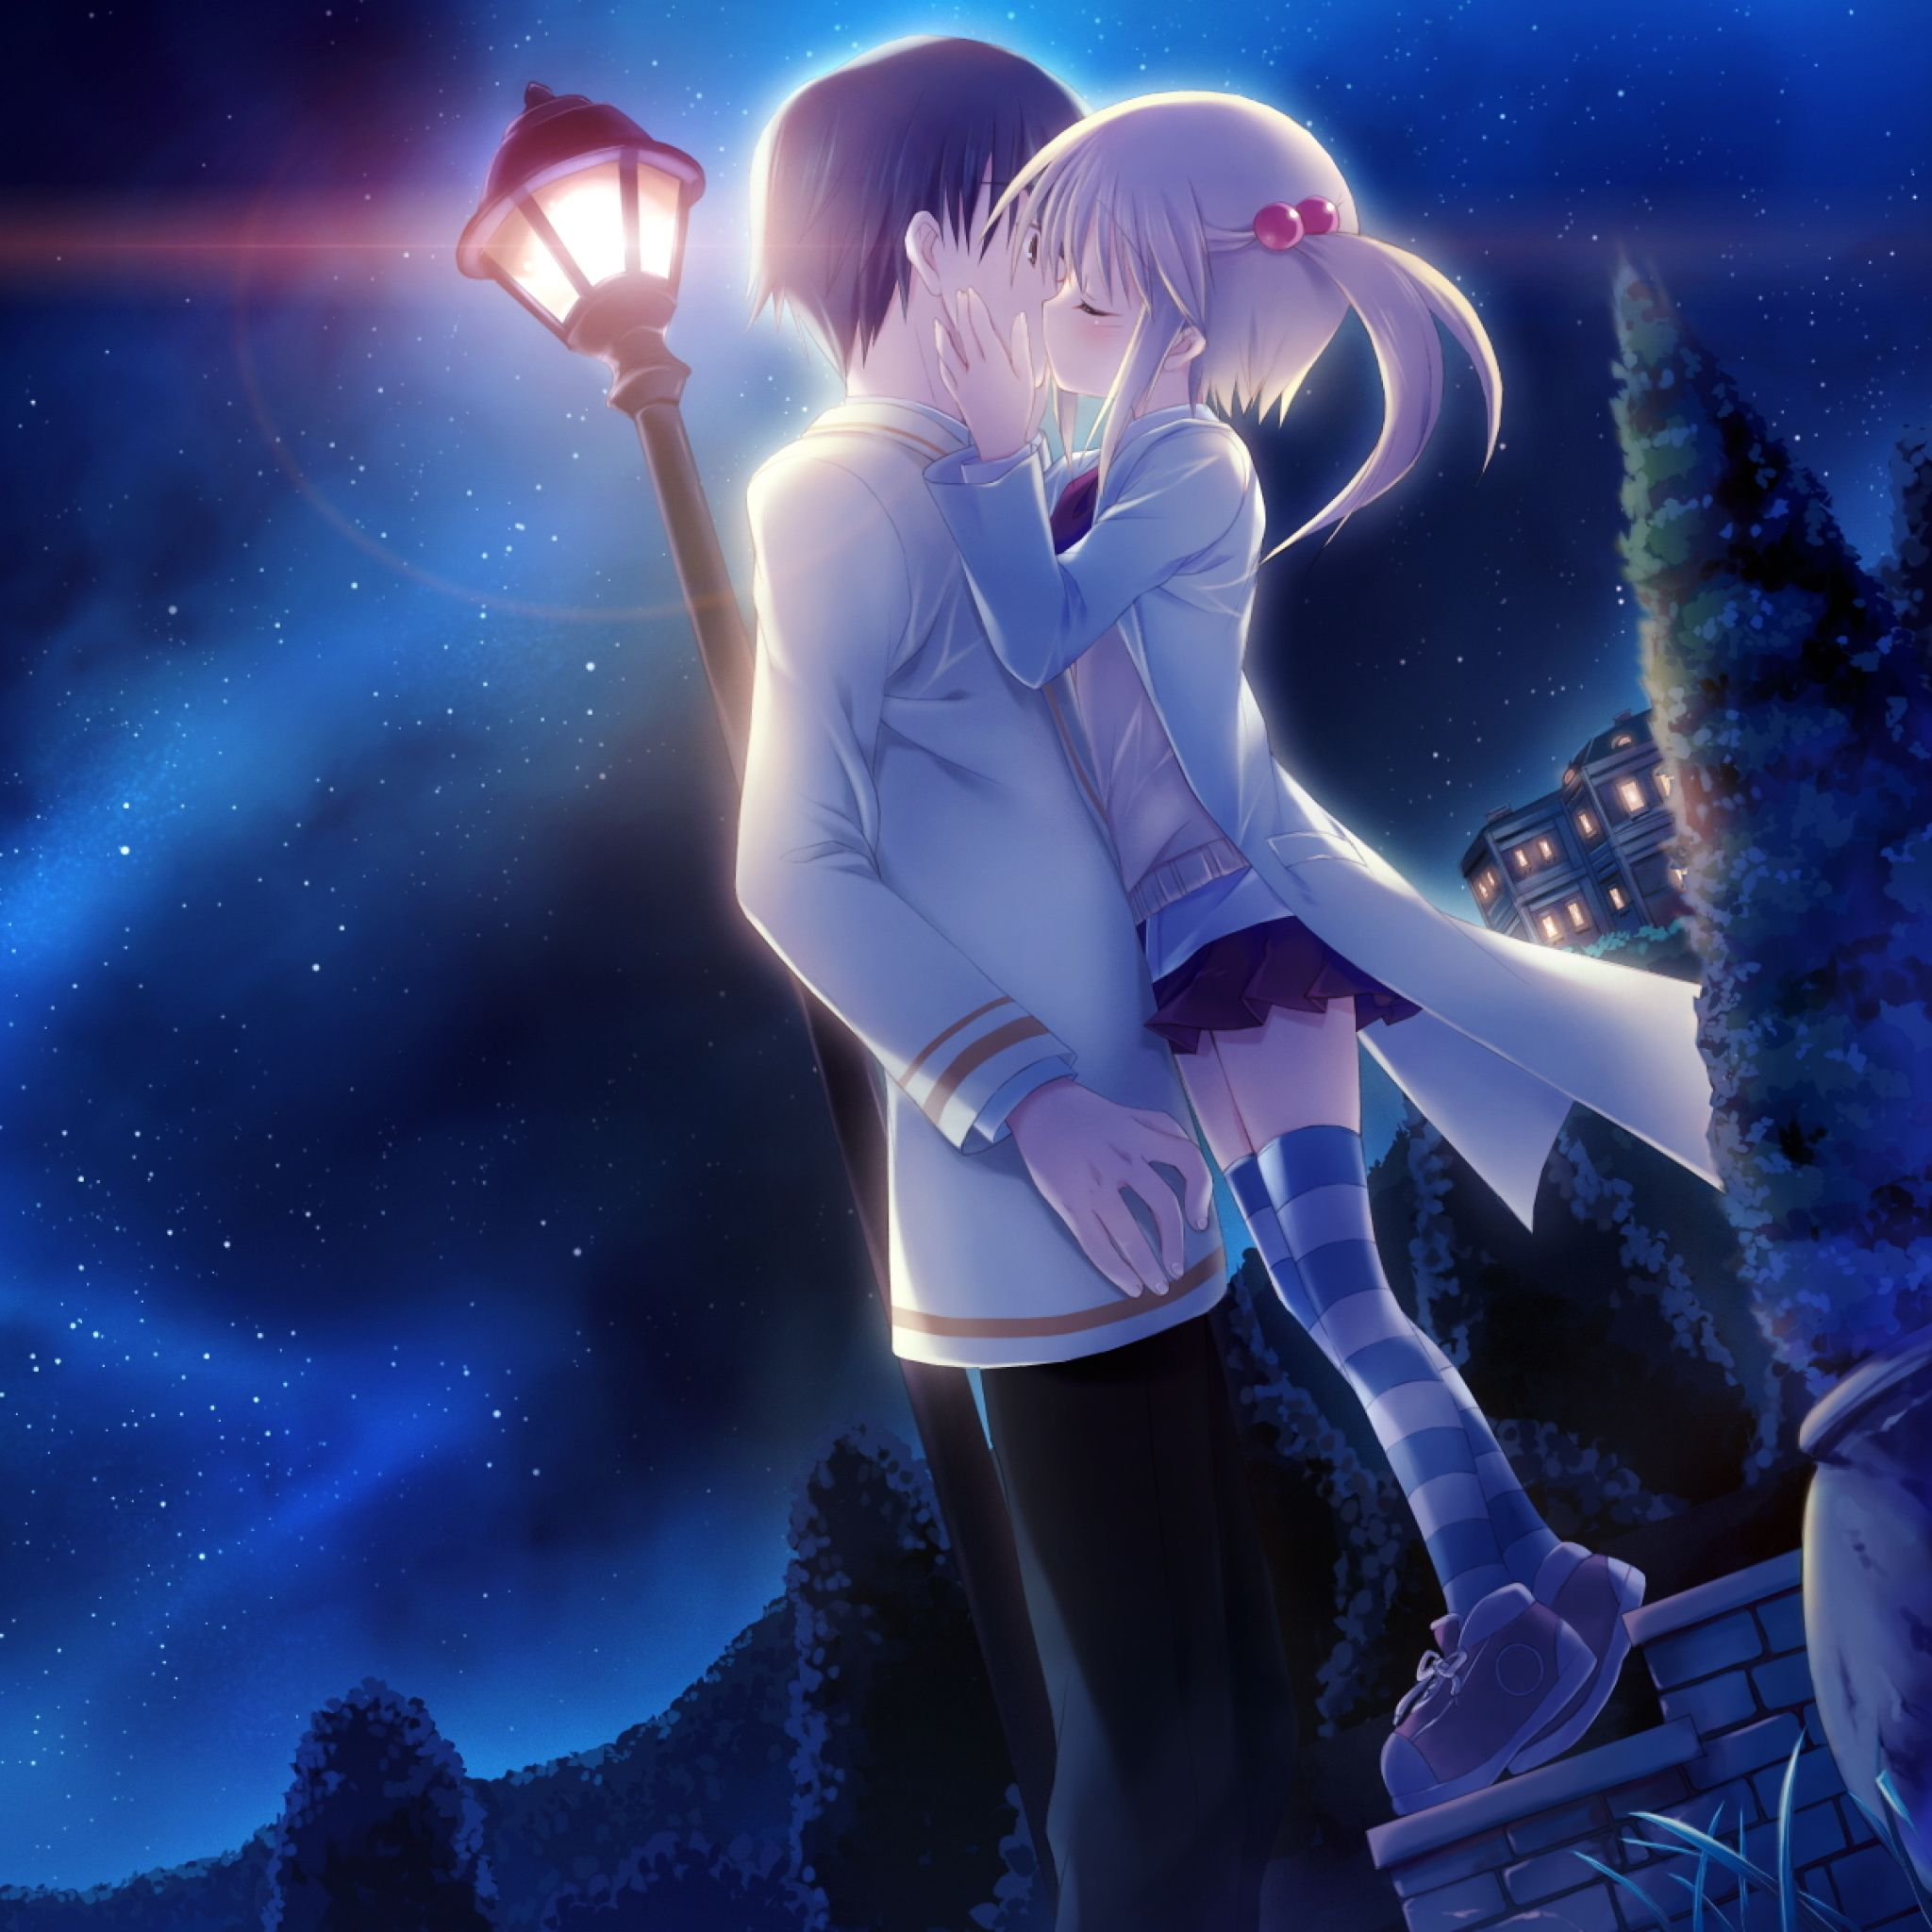 Celestial Night Tap to see more cute Anime love